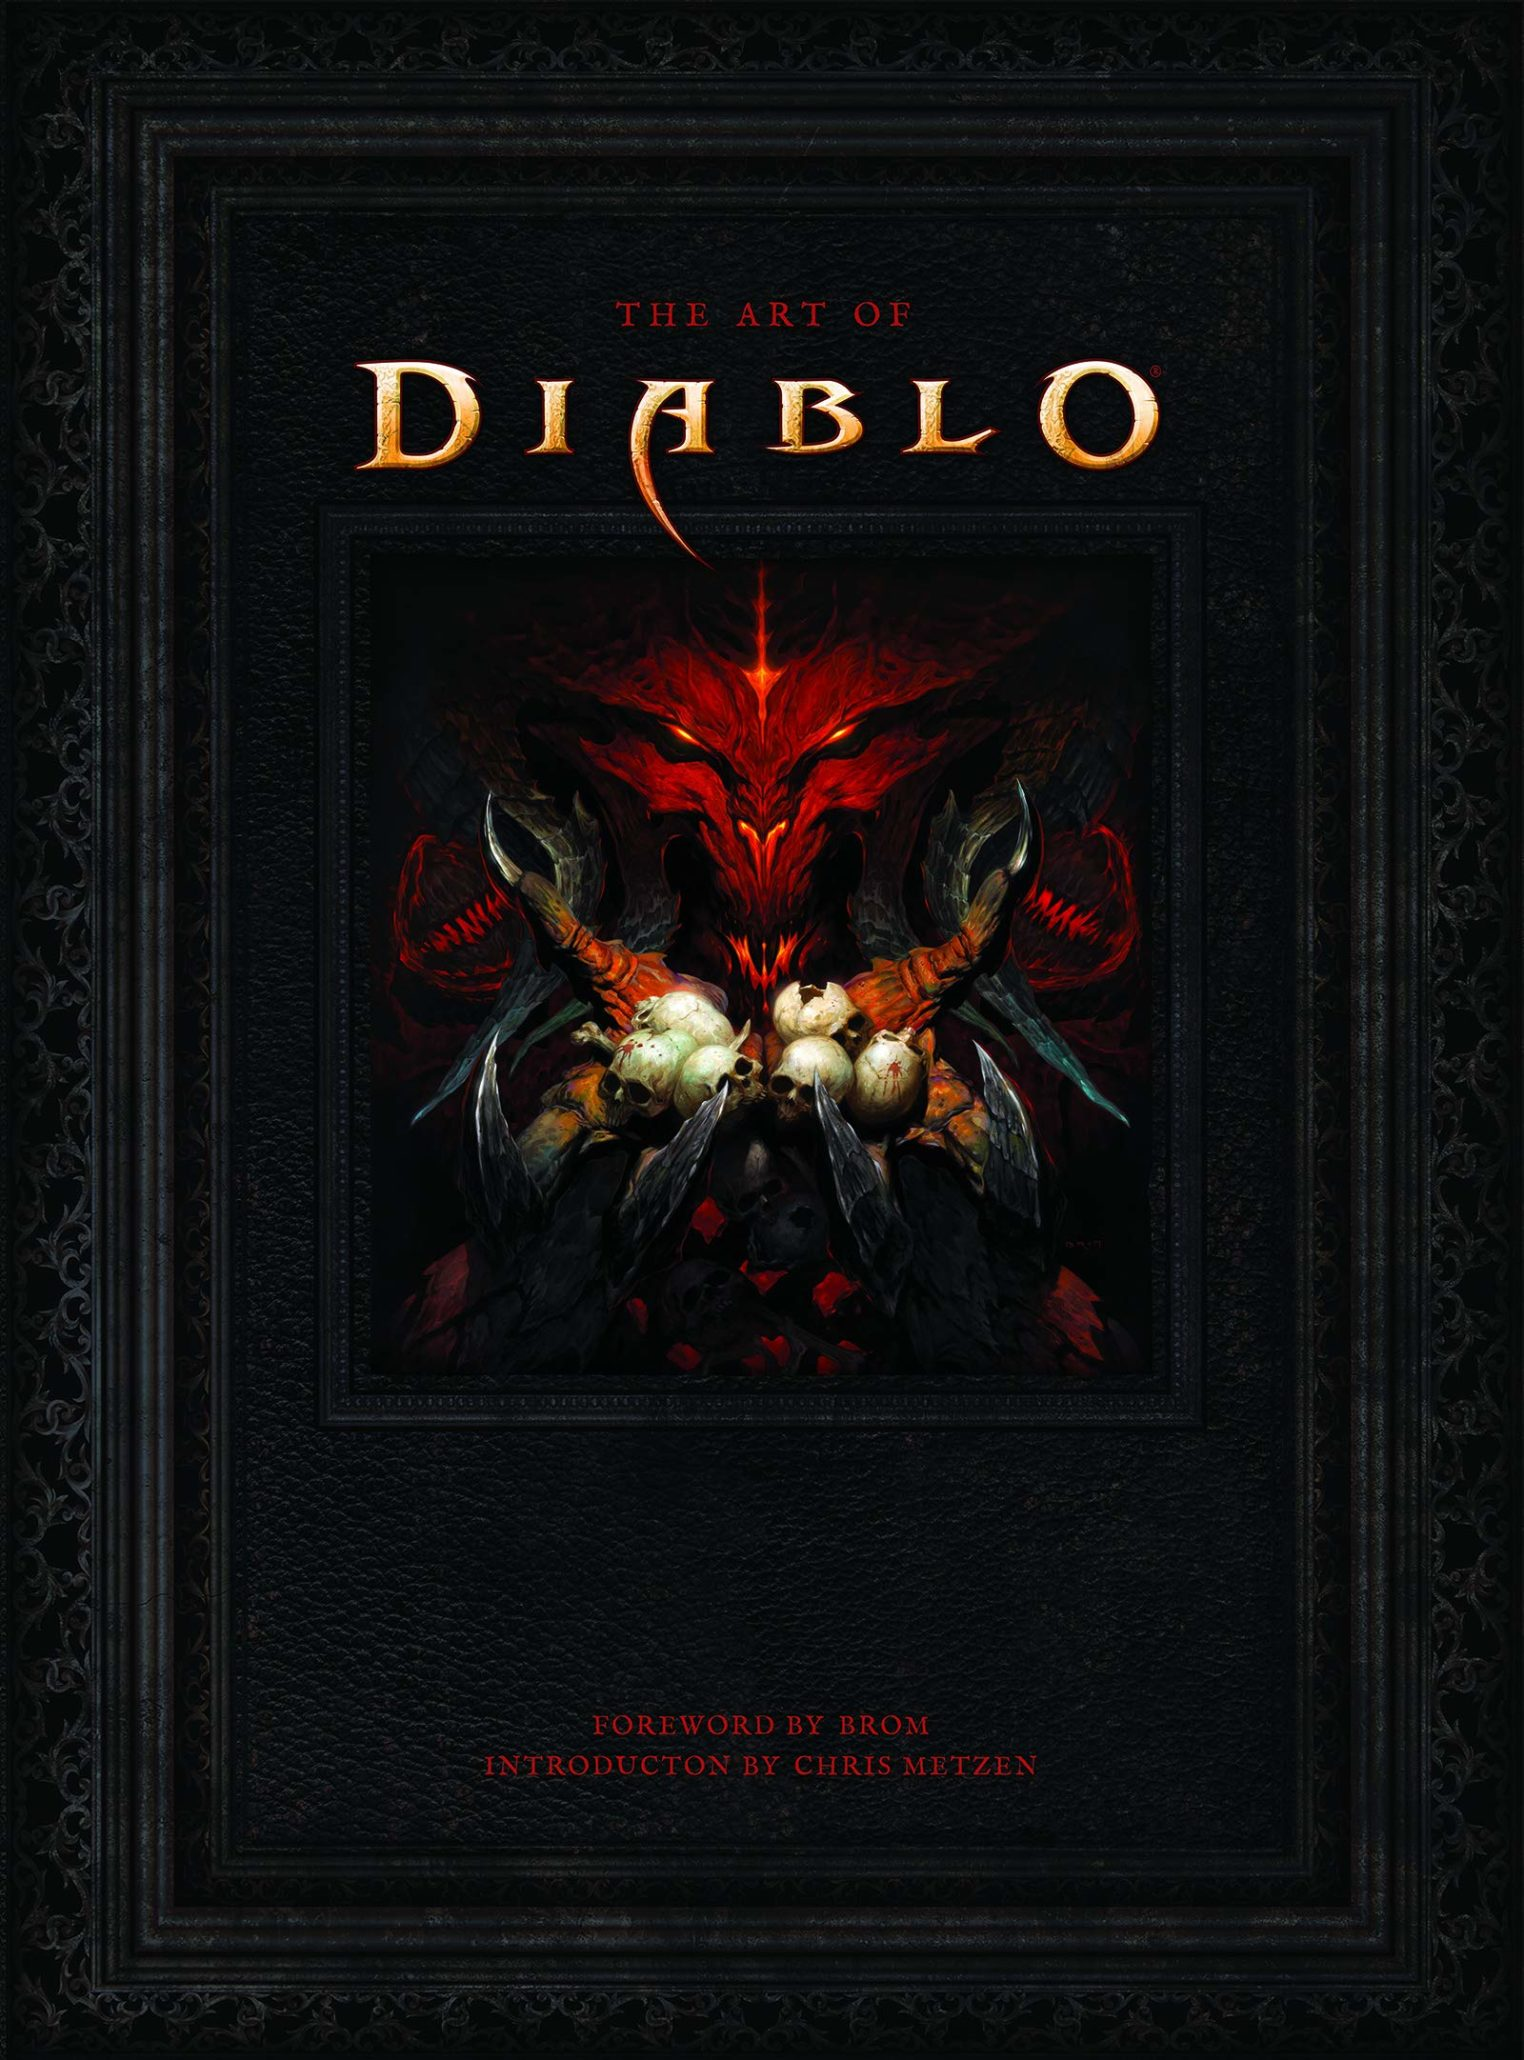 Diablo 4 Confirmed Through New Art Book Leak Allegedly Being Announced Alongside Diablo 2 Remastered At Blizzcon 2019